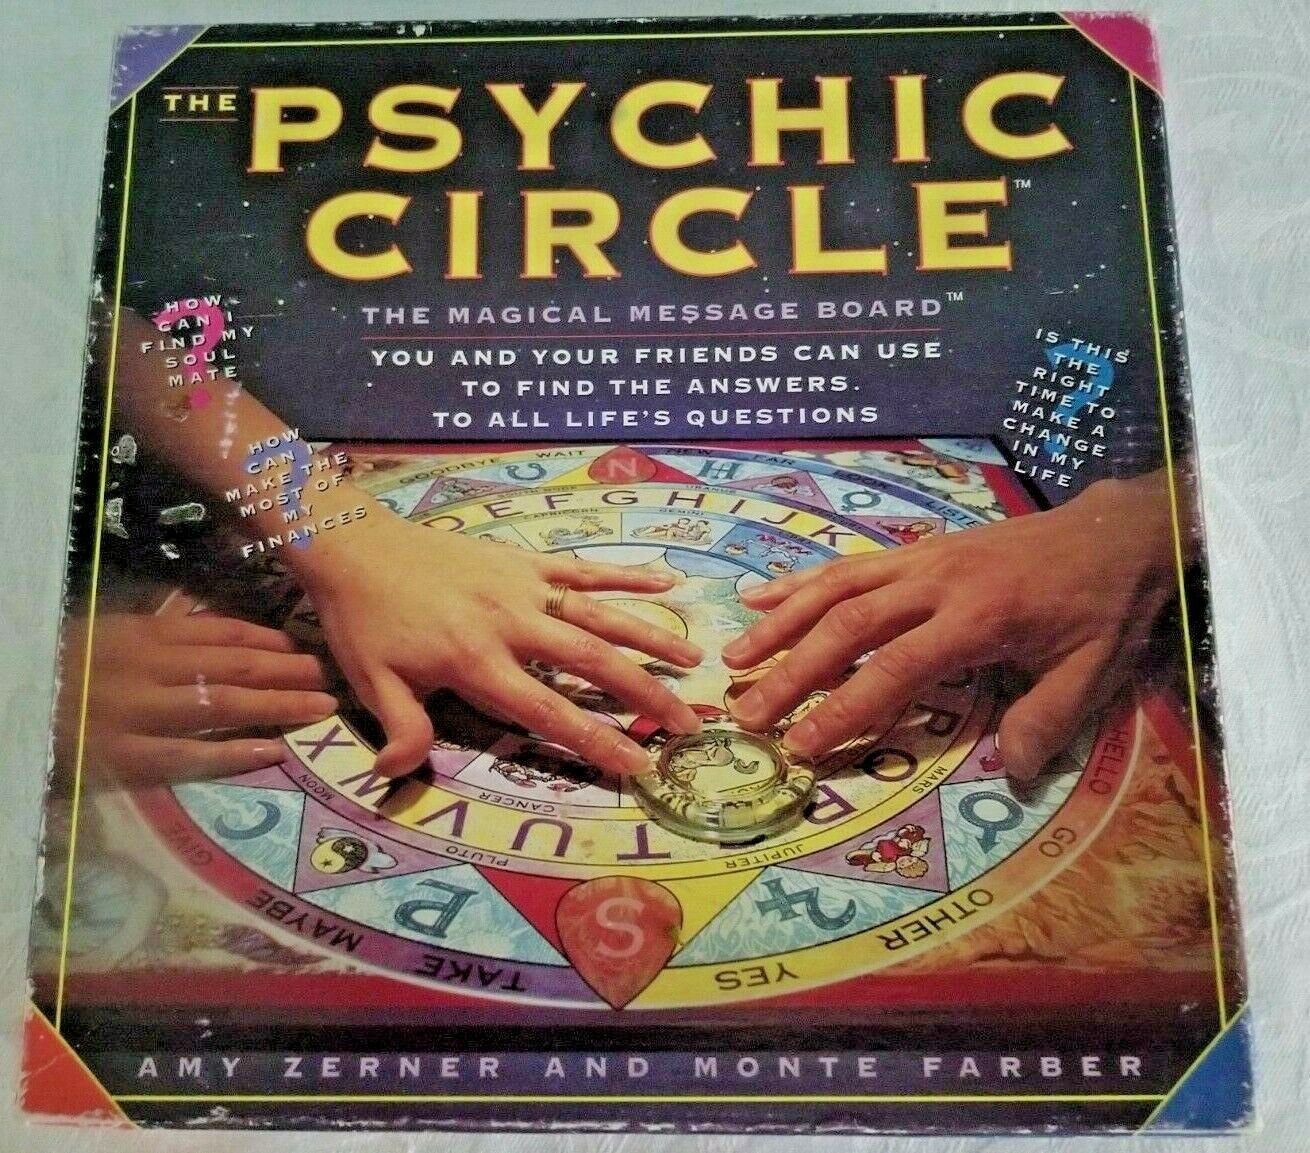 The Psychic Circle The Magical Message Board By Amy Zerner And Monte Farber CIB - $12.95